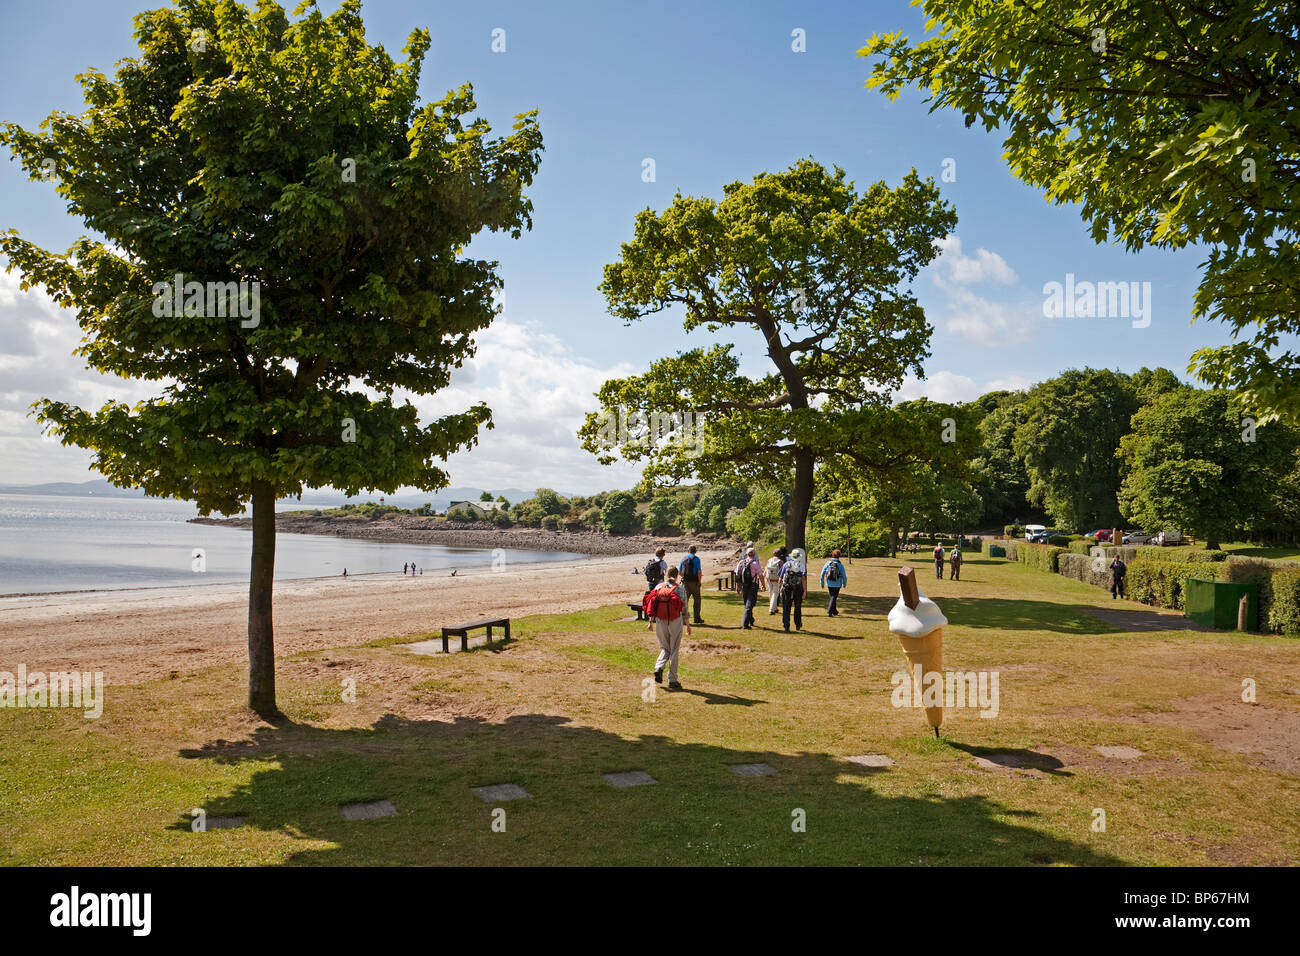 A Rambling Club on the Fife Coastal Path at Silver Sands, Aberdour - Stock Image